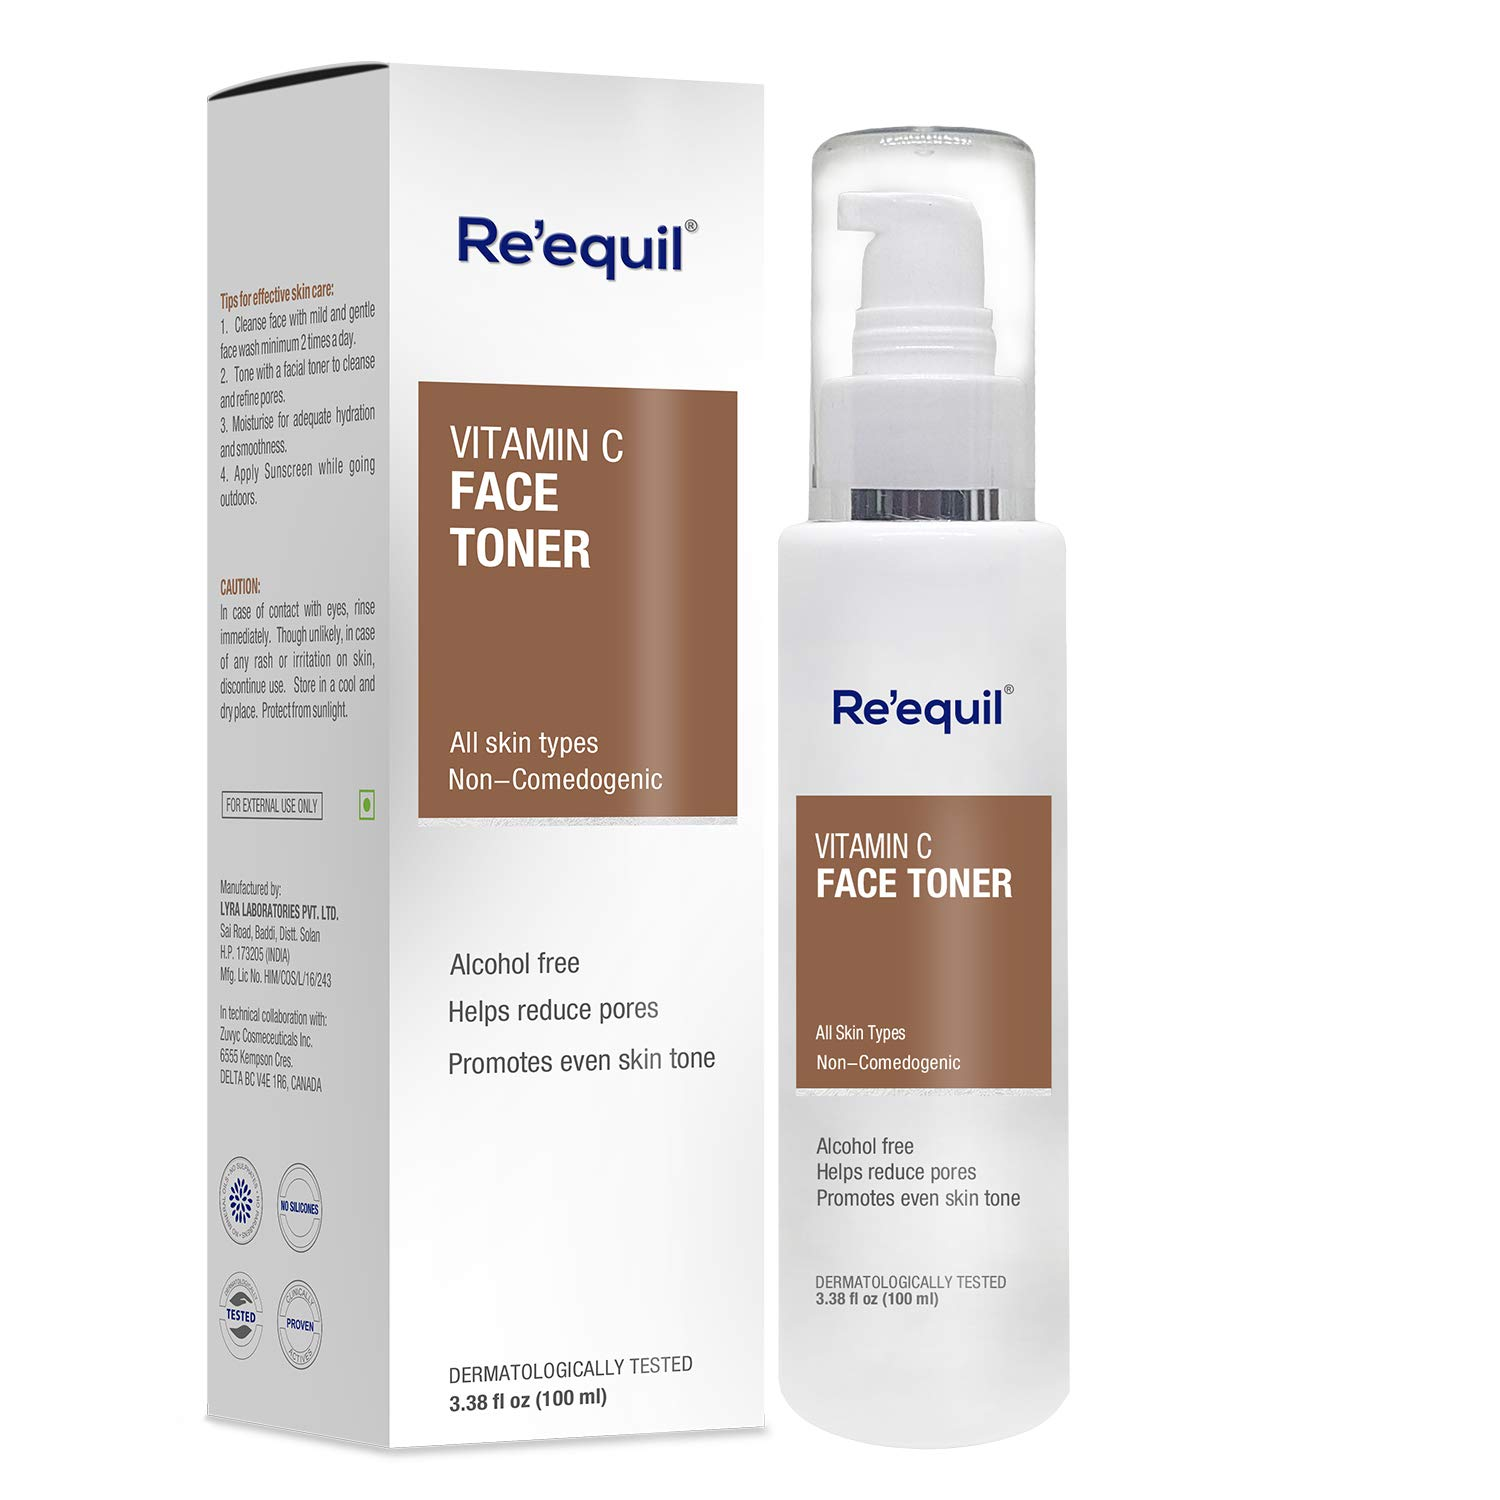 RE' EQUIL Vitamin C Face Toner for Hyperpigmentation Removal and Even Skin Tone - 100ml product image